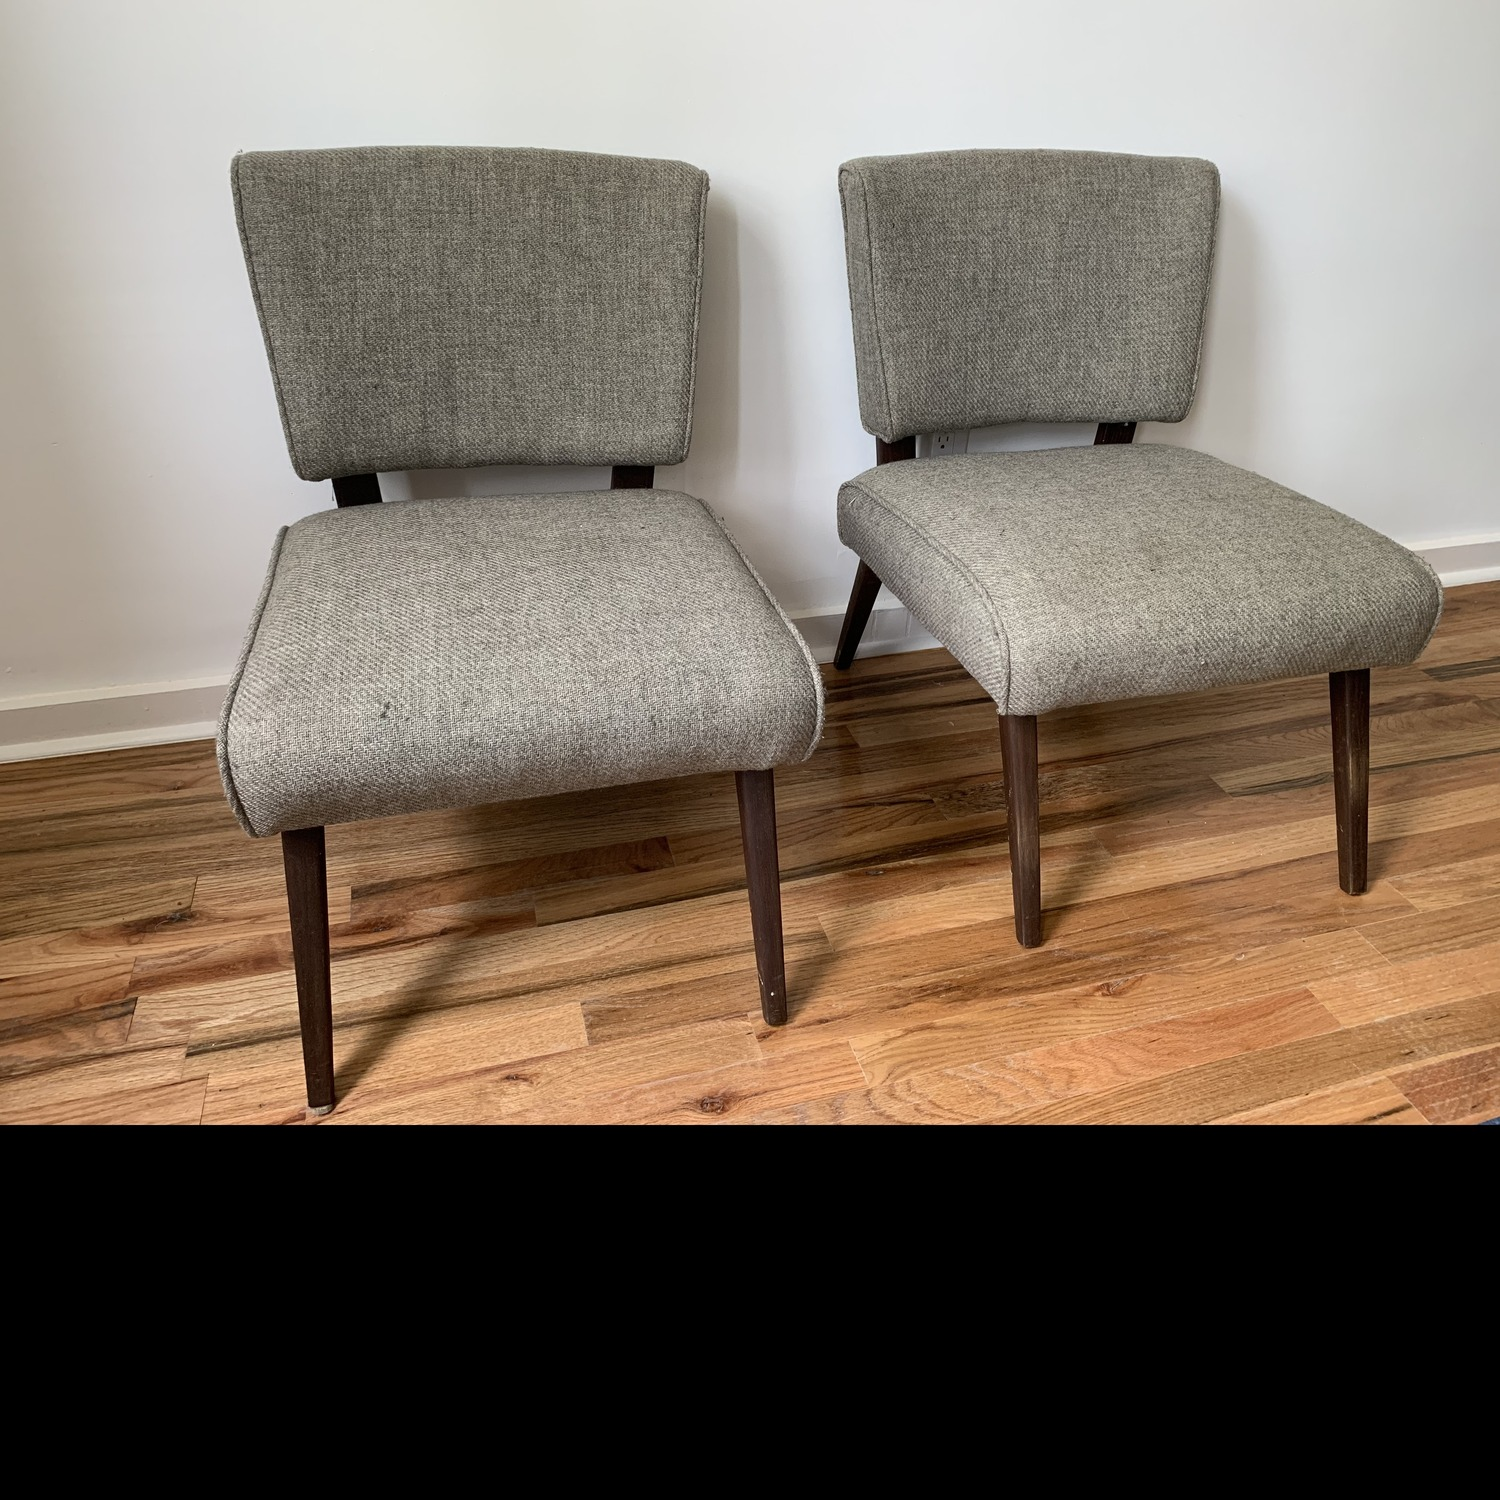 Vintage Mid Century Accent Chairs - image-4